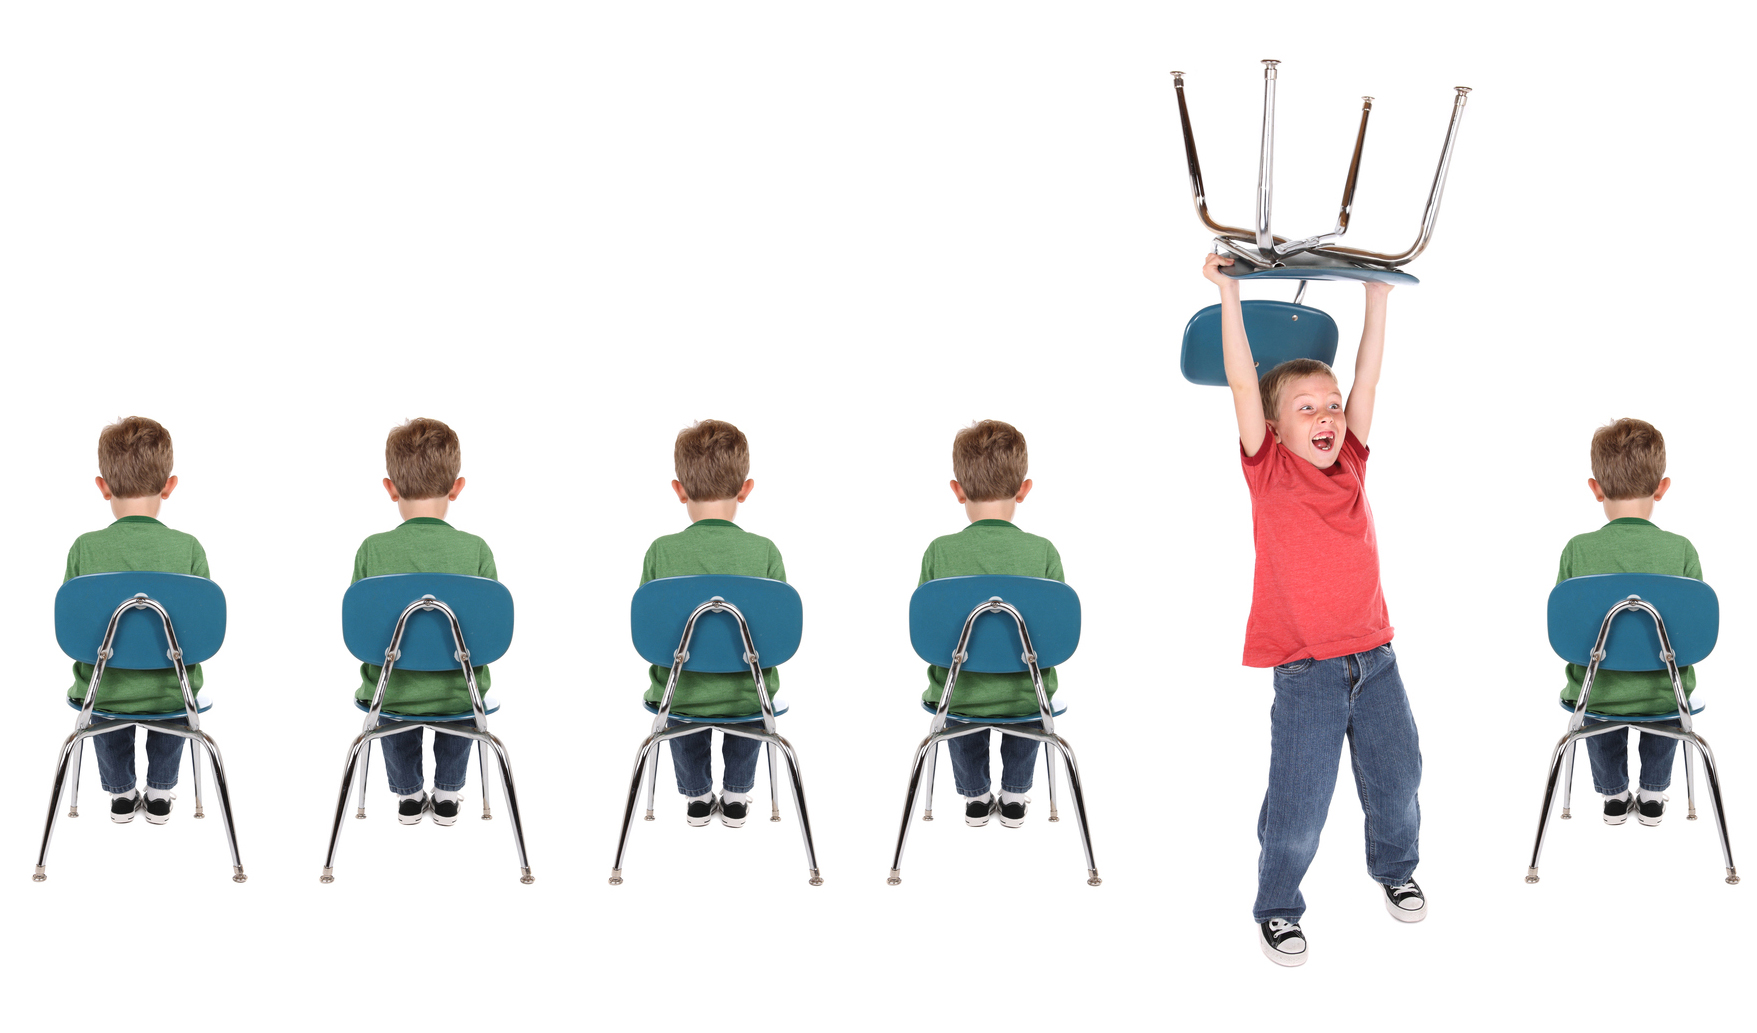 adhd a behavioral disorder in children An estimated 84 percent of children and 25 percent of adults have adhd 1,2 adhd is often first identified in school-aged children when it leads to disruption in the classroom or problems with schoolwork it can also affect adults.